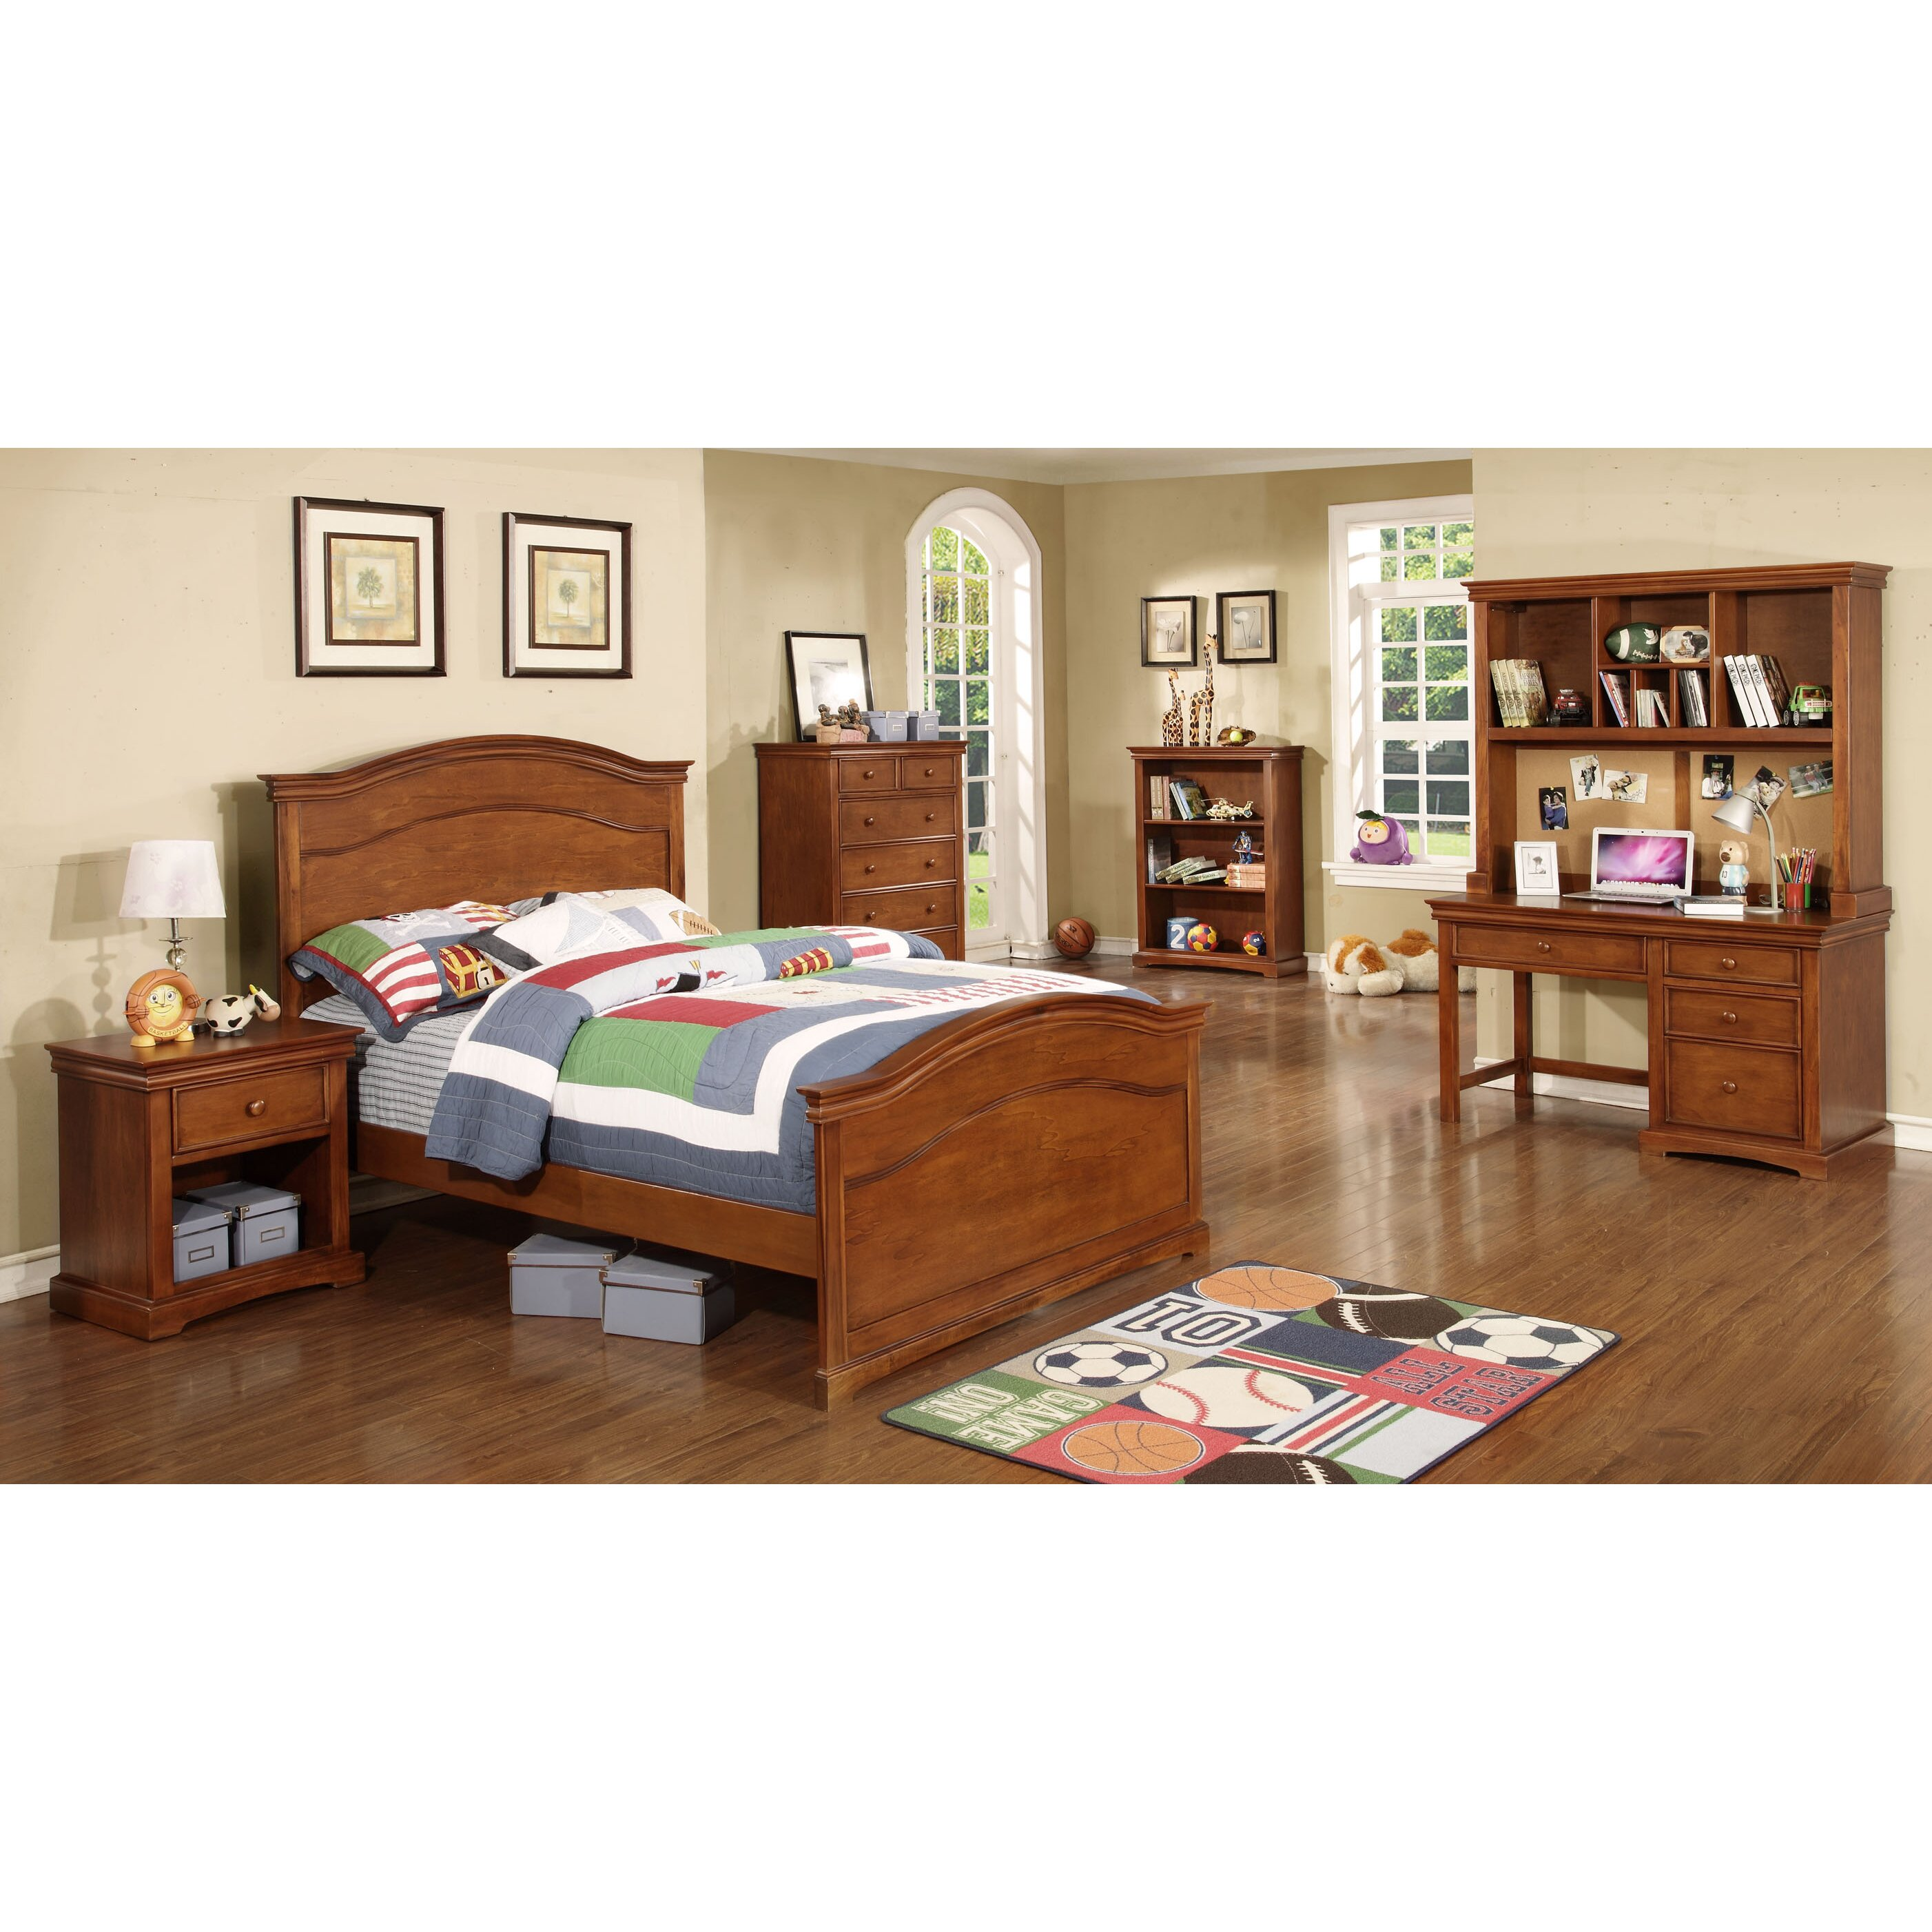 Stunning Bellissimo Bedroom Furniture Photos - Decorating House ...